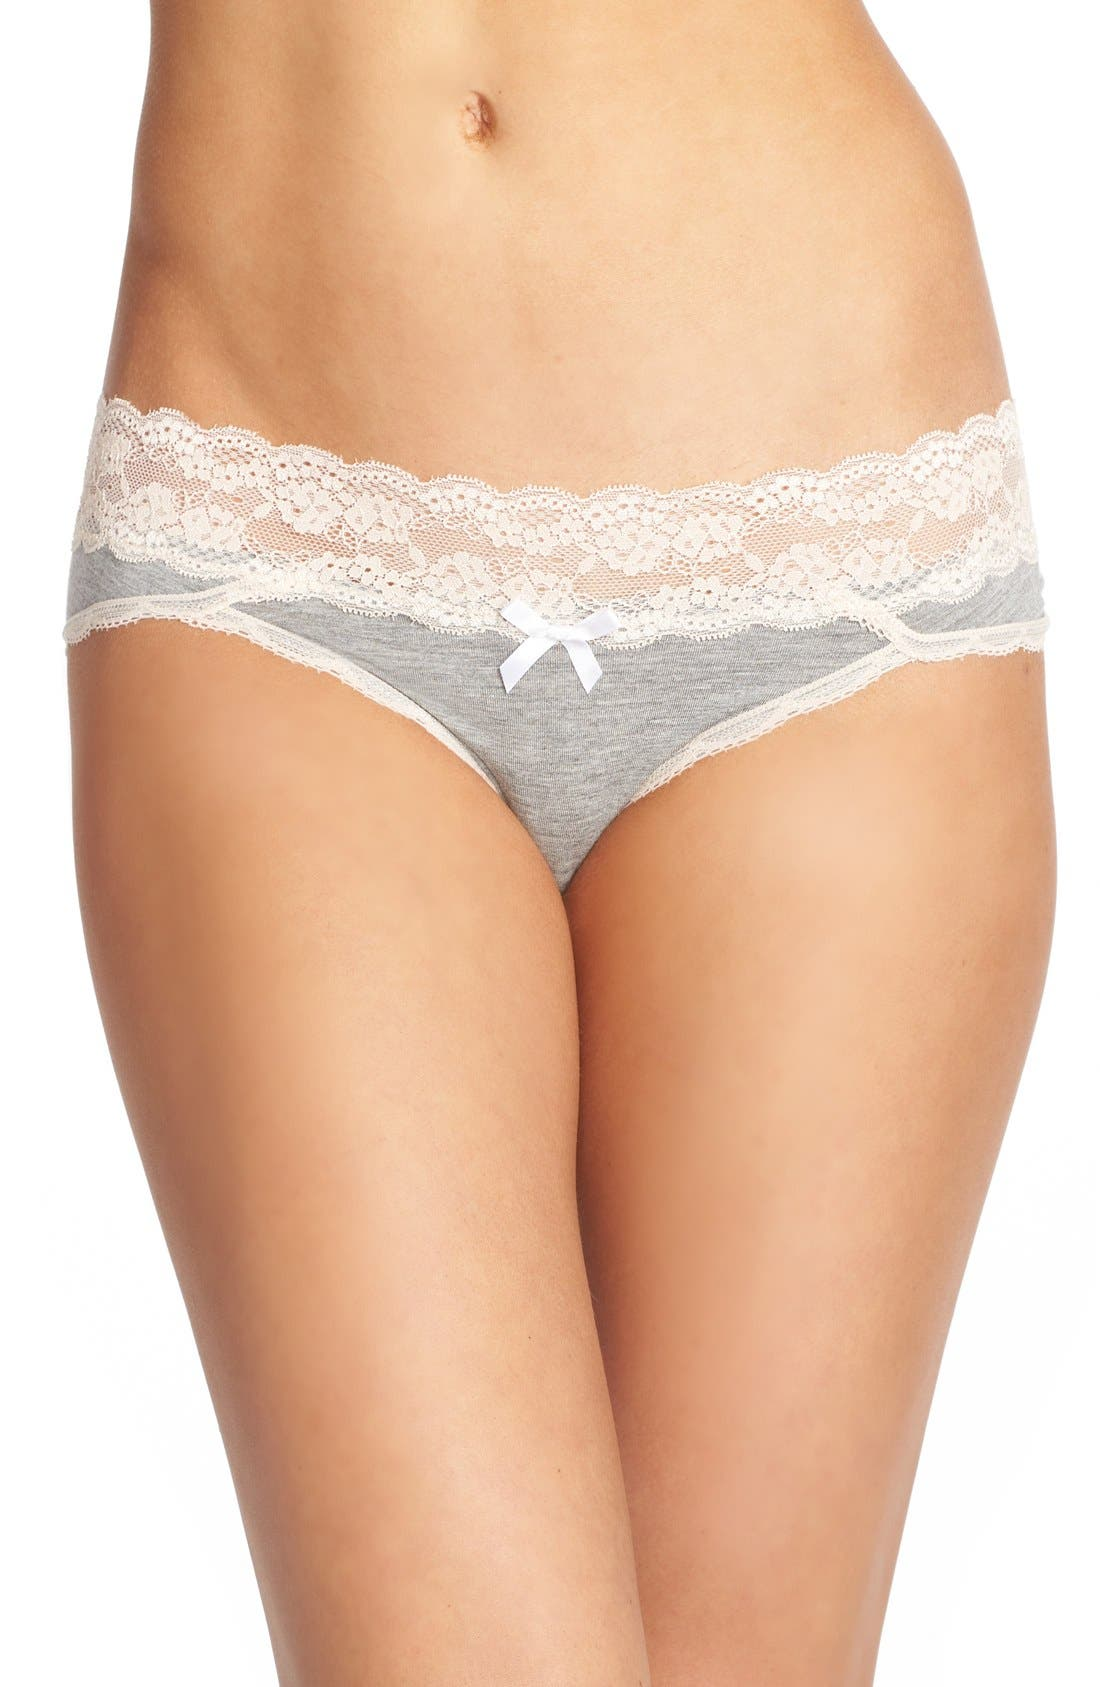 Lace Waistband Hipster Panties,                         Main,                         color, Heather Grey/ Seashell